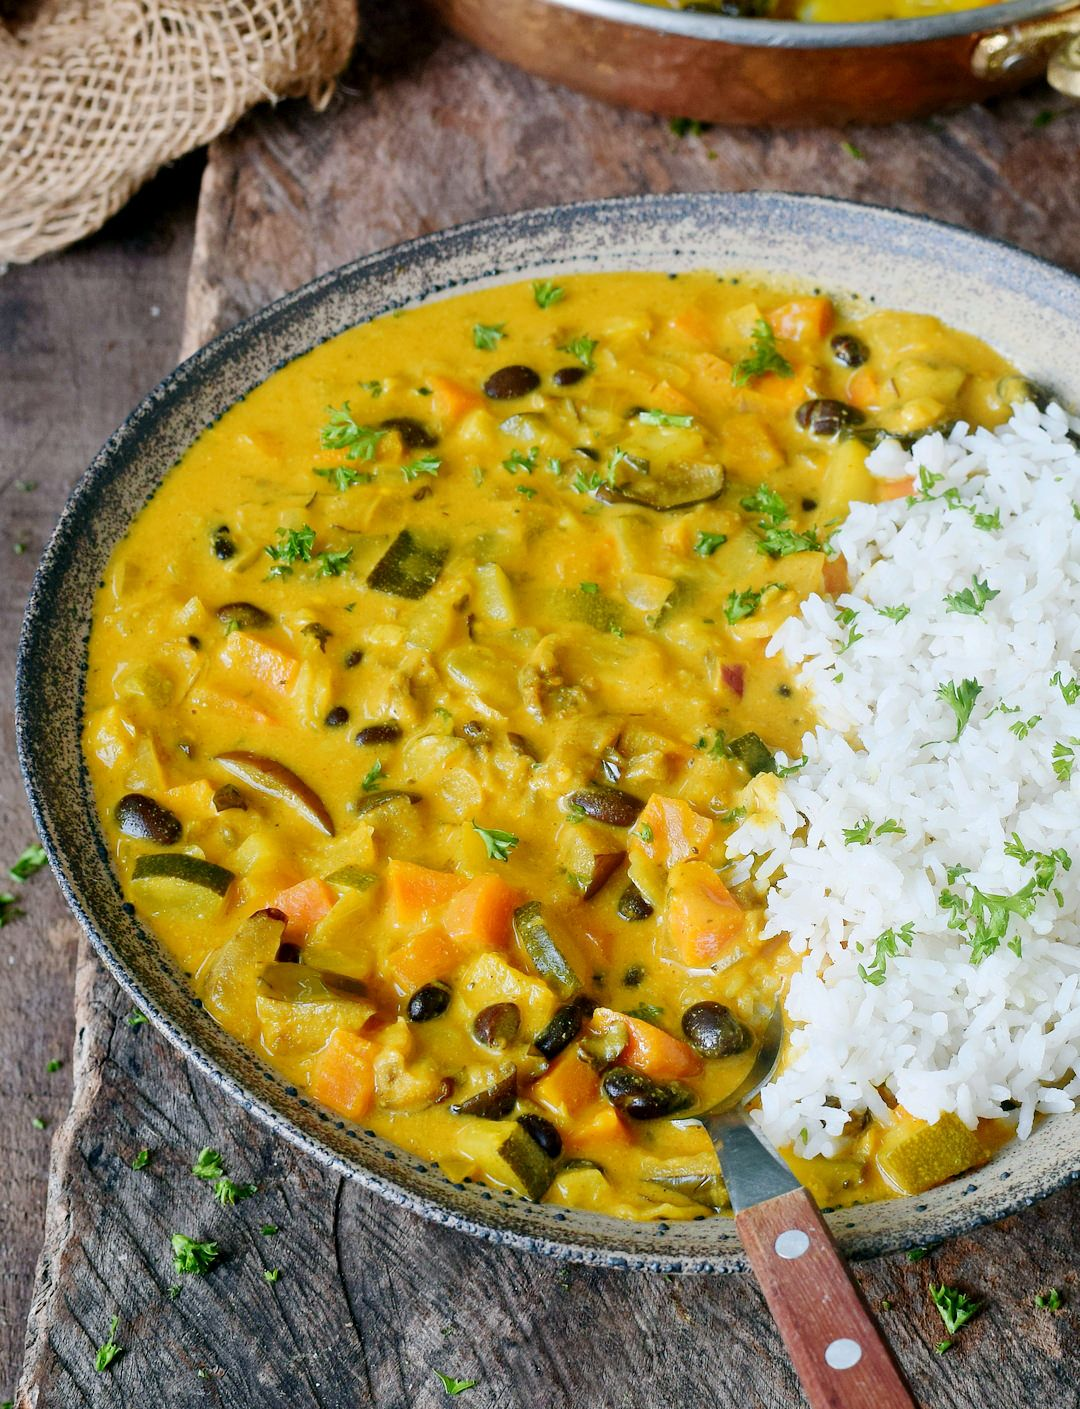 Vegetable Curry Recipe With Coconut Milk Pineapple And Chickpeas Or Beans This Healthy Comfort Meal Vegetable Curry Curry Recipes Vegetable Curry Recipes